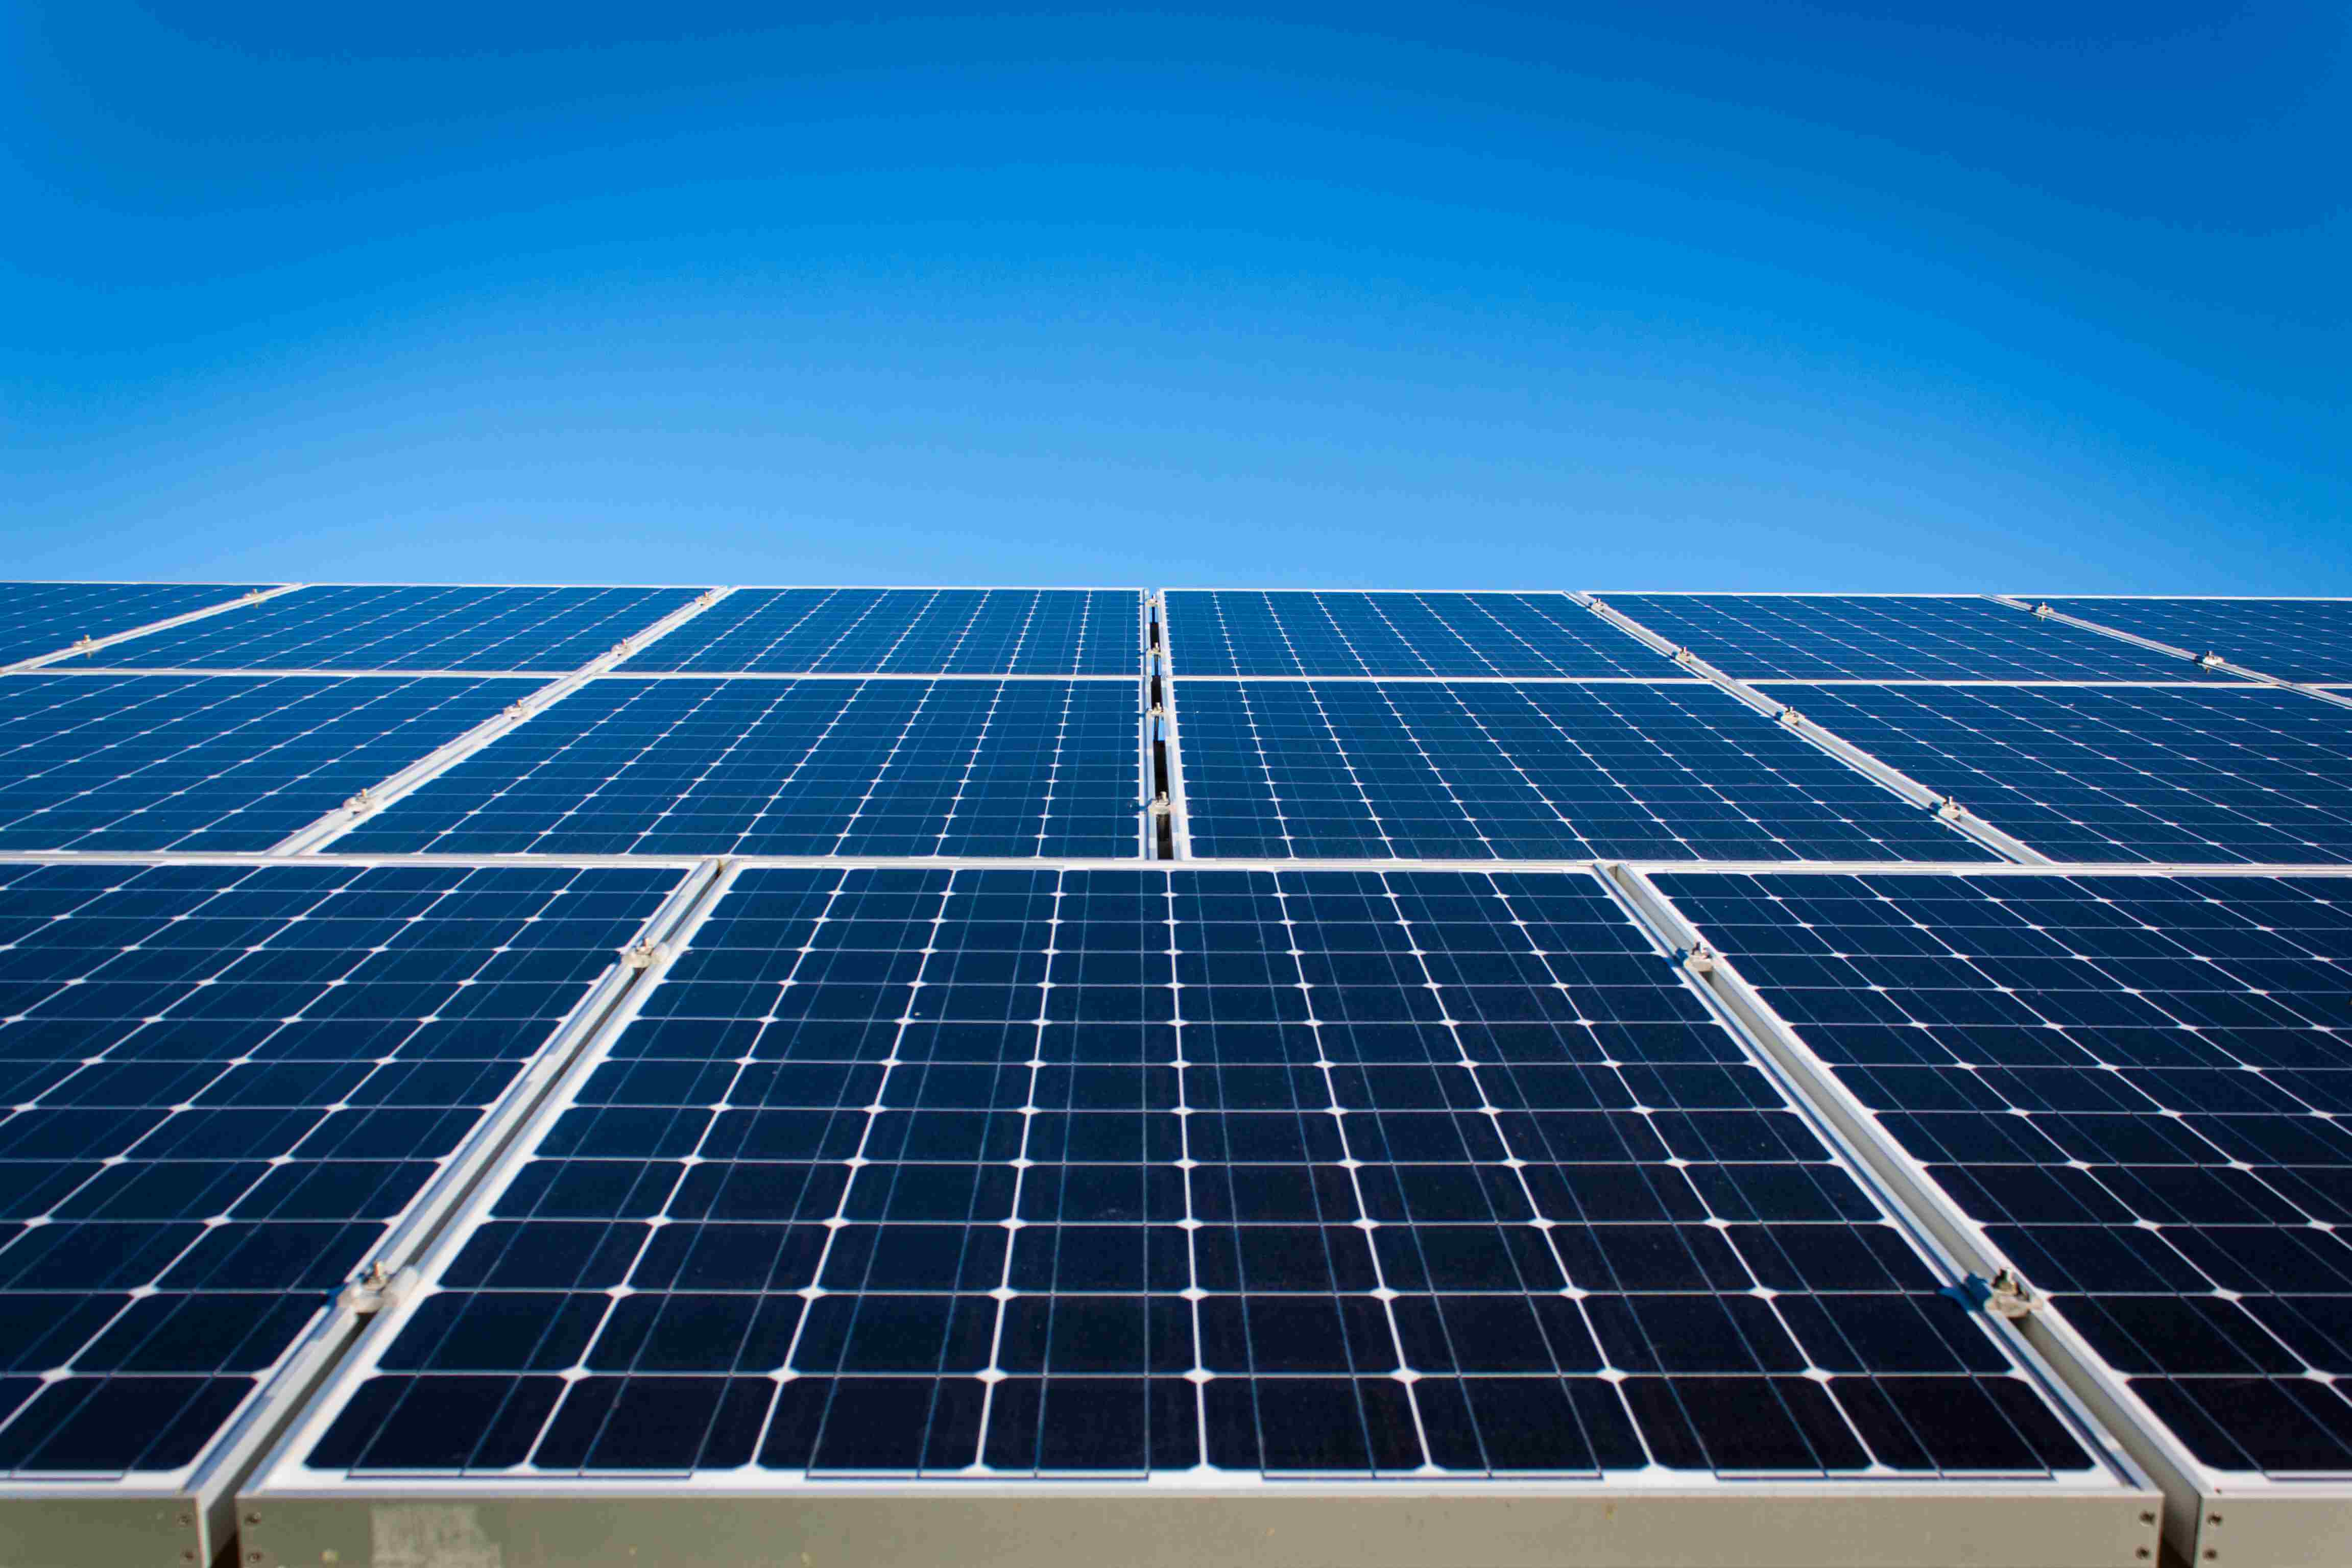 There're a number of different factors, including solar panel direction that can have an effect on the energy production.